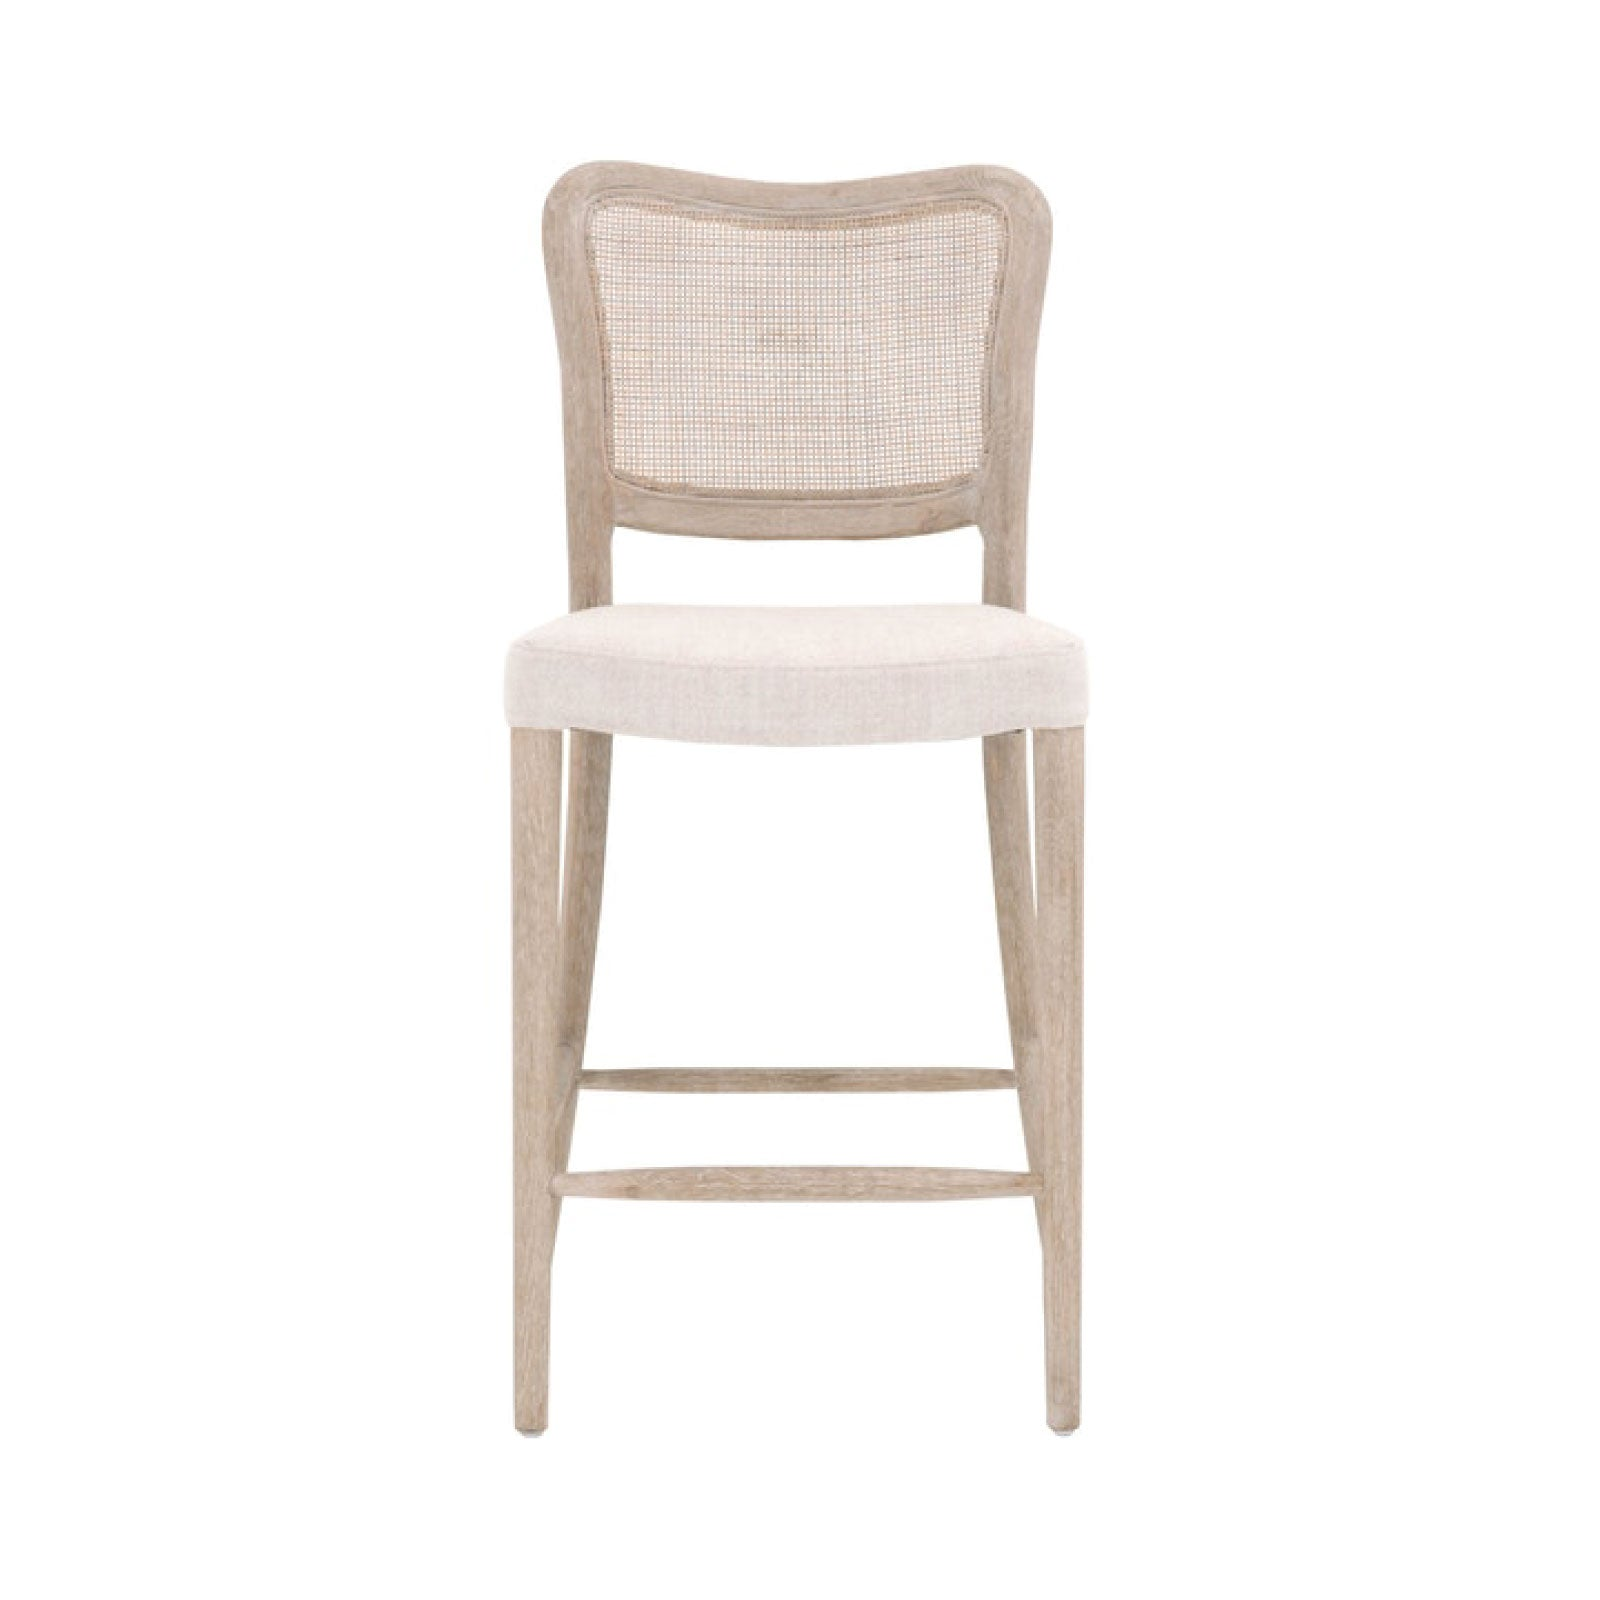 Celine Counter Stool